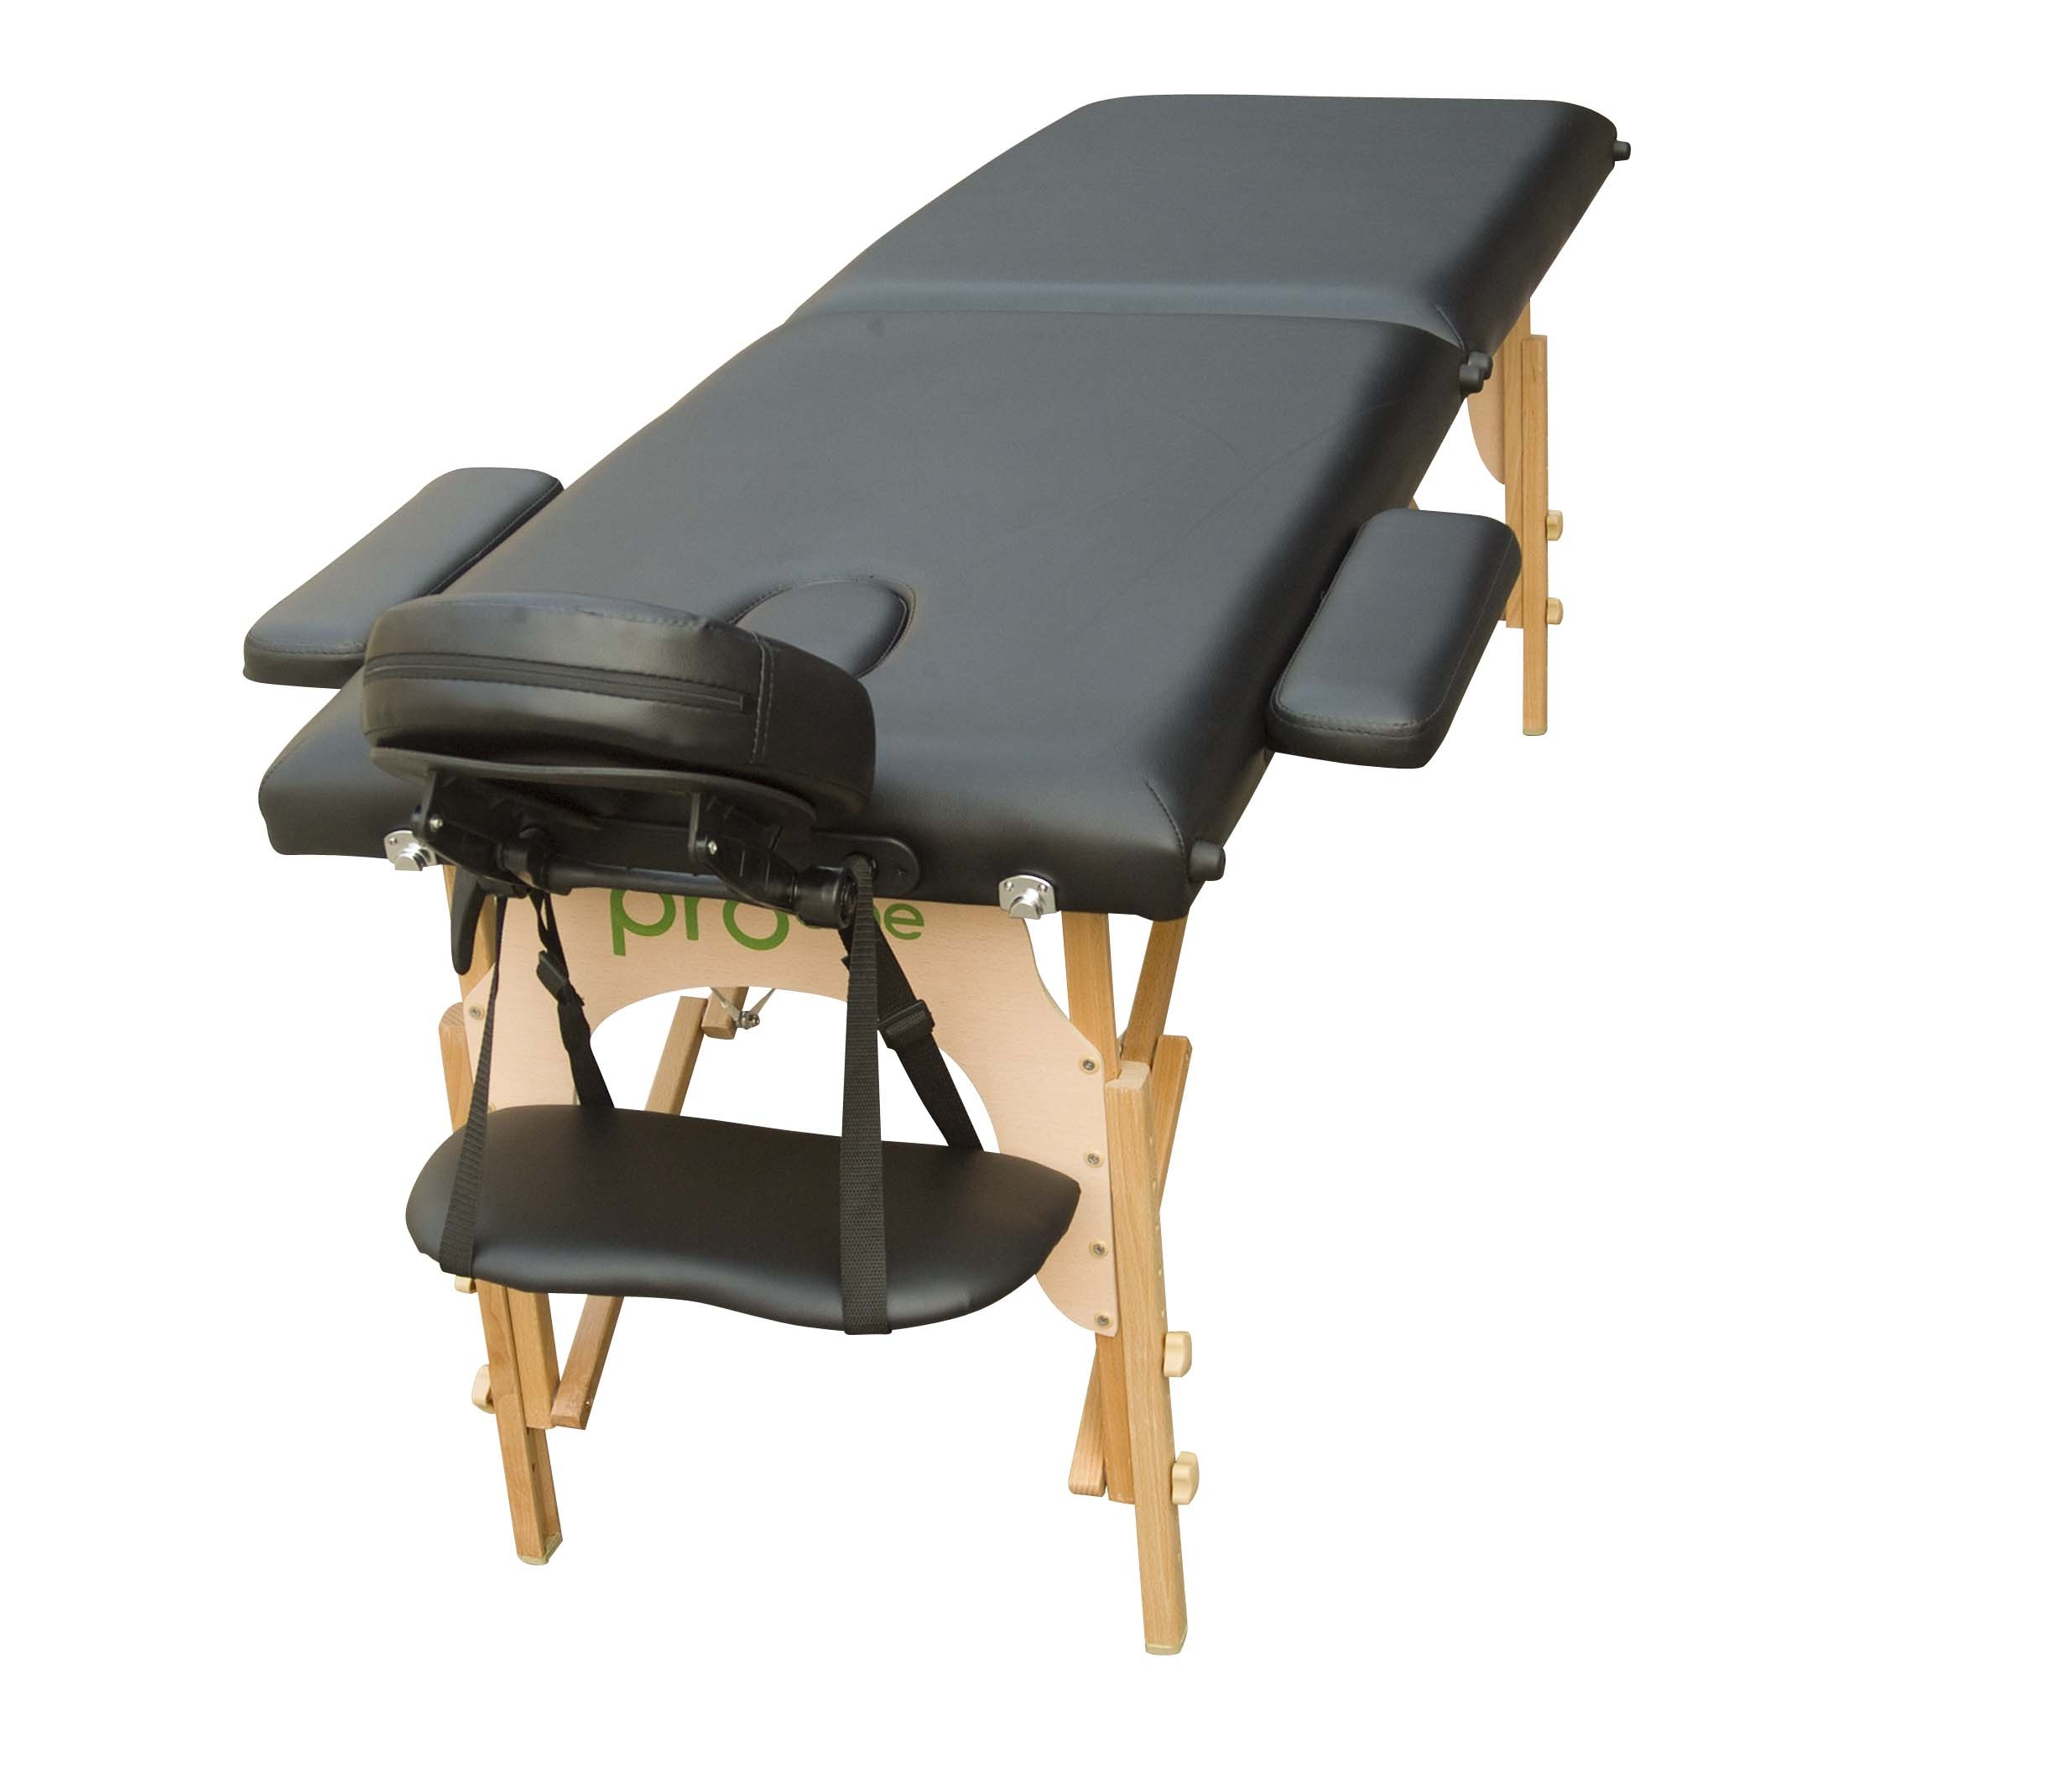 Table de massage pliante noire